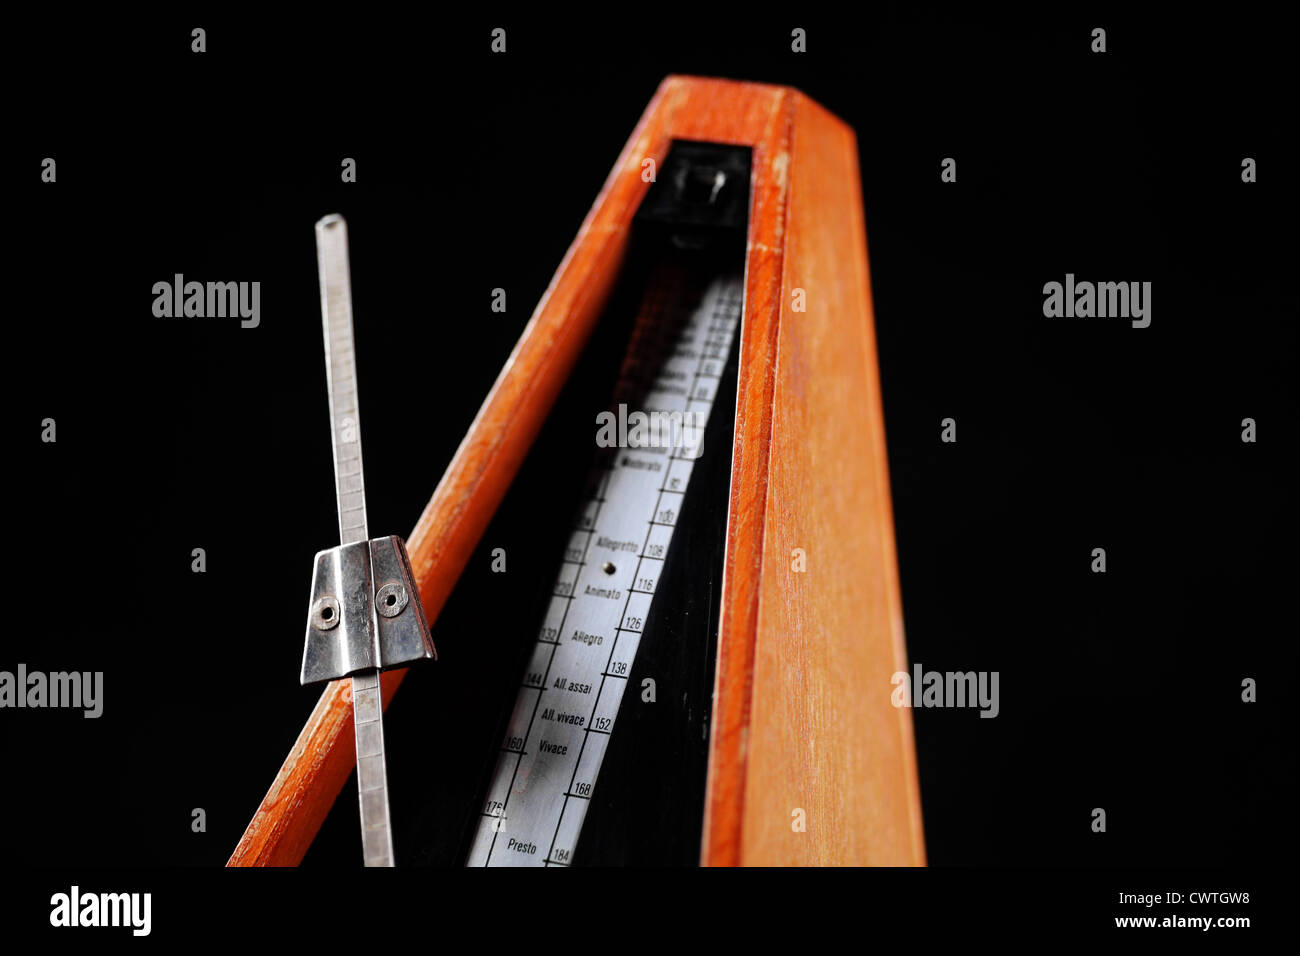 Vertical shot of a vintage metronome, on black - Stock Image